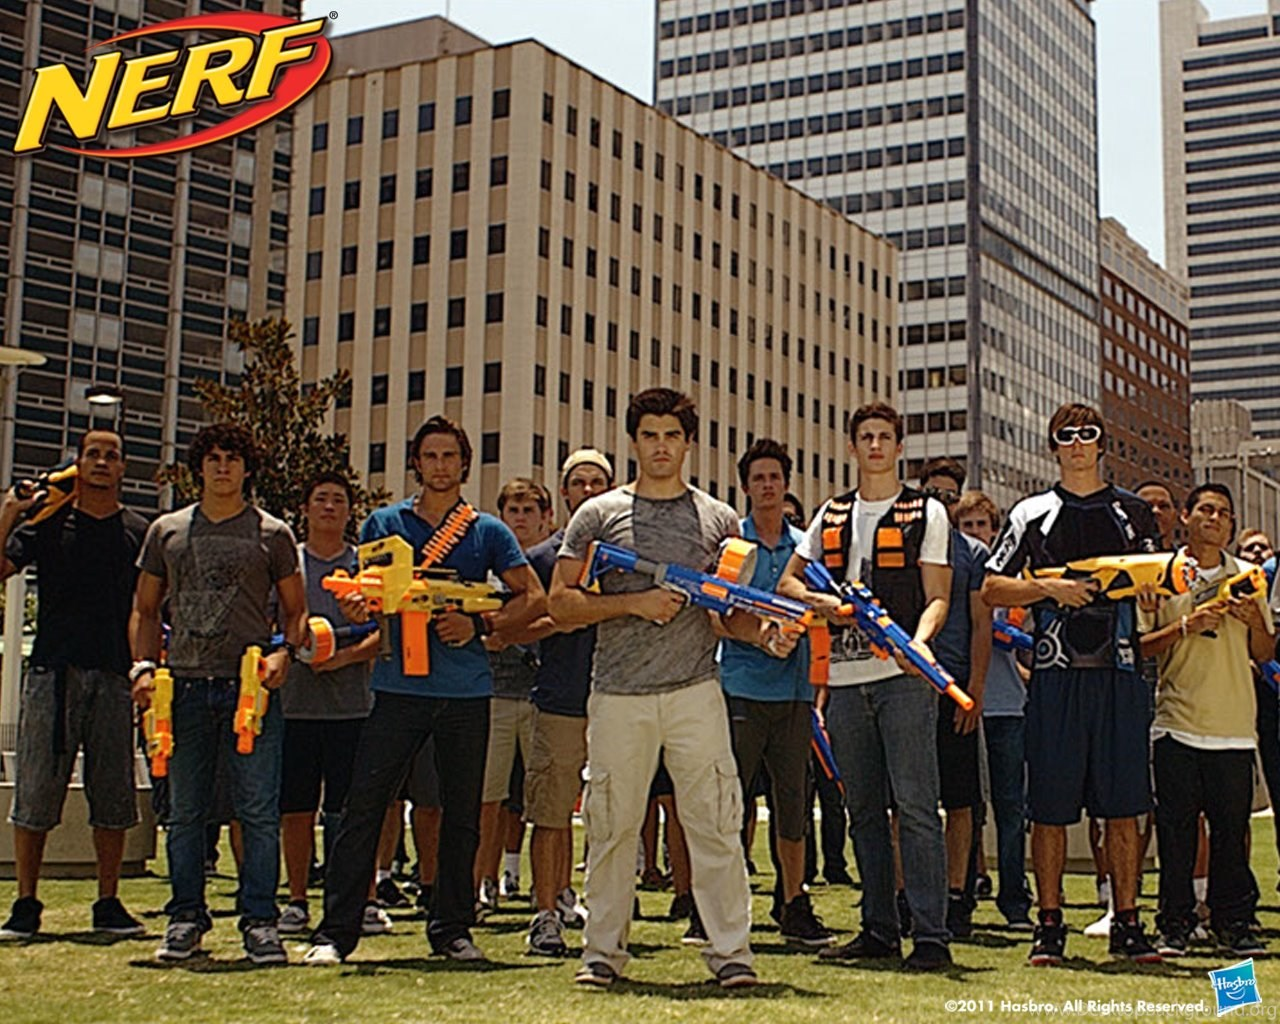 NERF NATION Wallpaper Desktop Background